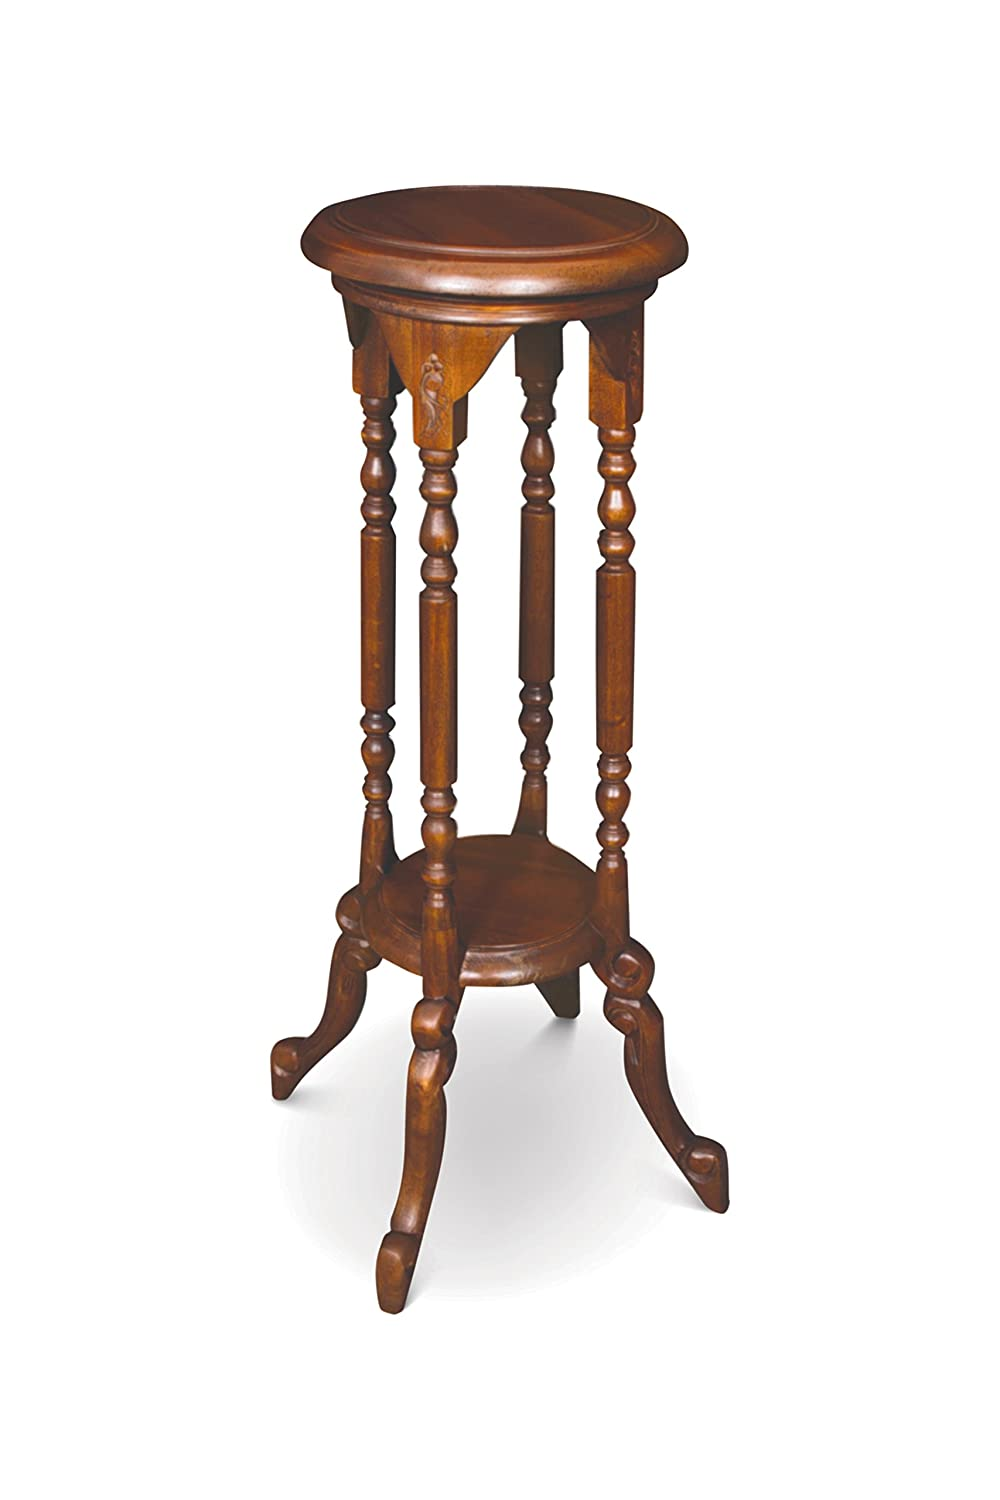 Amazon com nes furniture nes10046 31 fine handcrafted furniture solid mahogany wood felicity plant stand pine kitchen dining